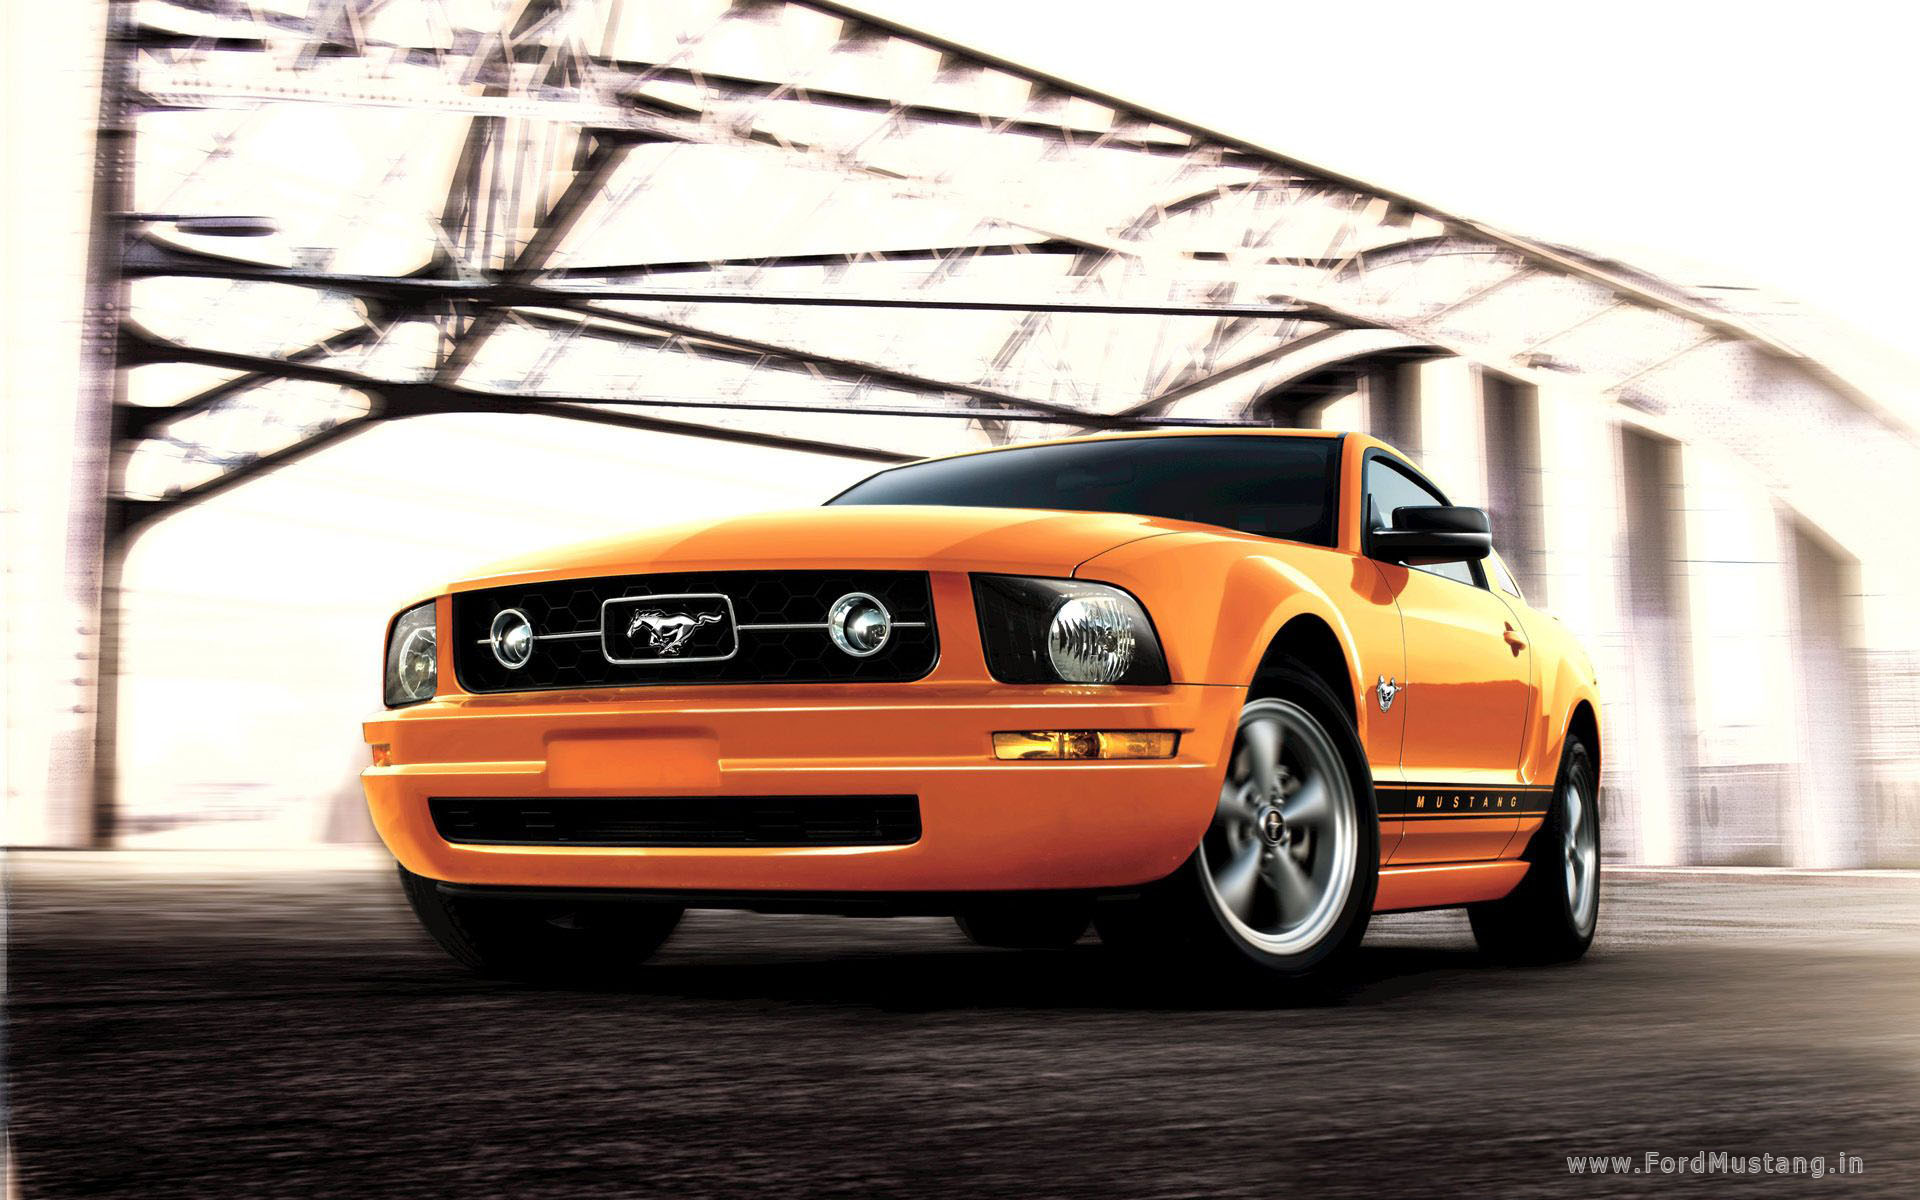 ford mustang high quality wallpapers wallpaper 1920x1200 1920x1200